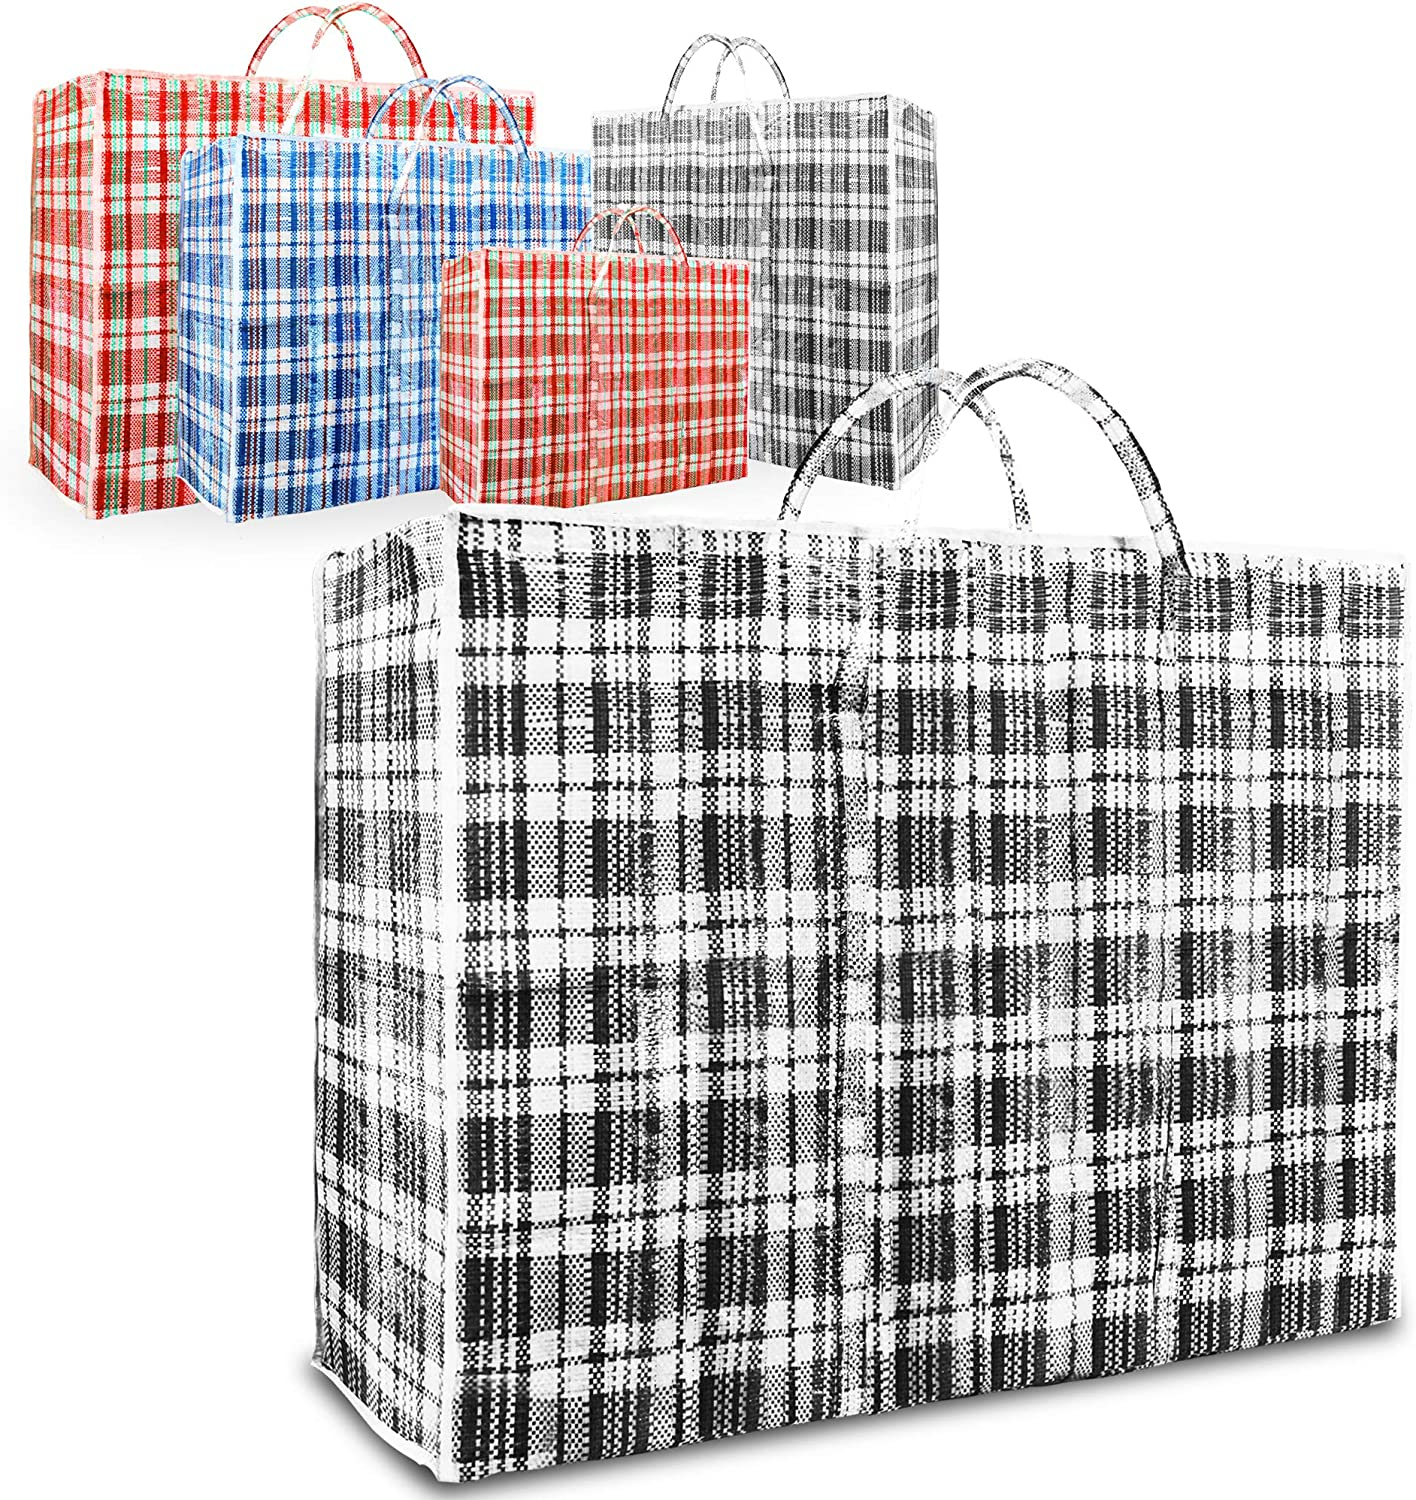 Moving Extra Strong Durable Shopping Laundry Bags L // XL // Jumbo Storage UK